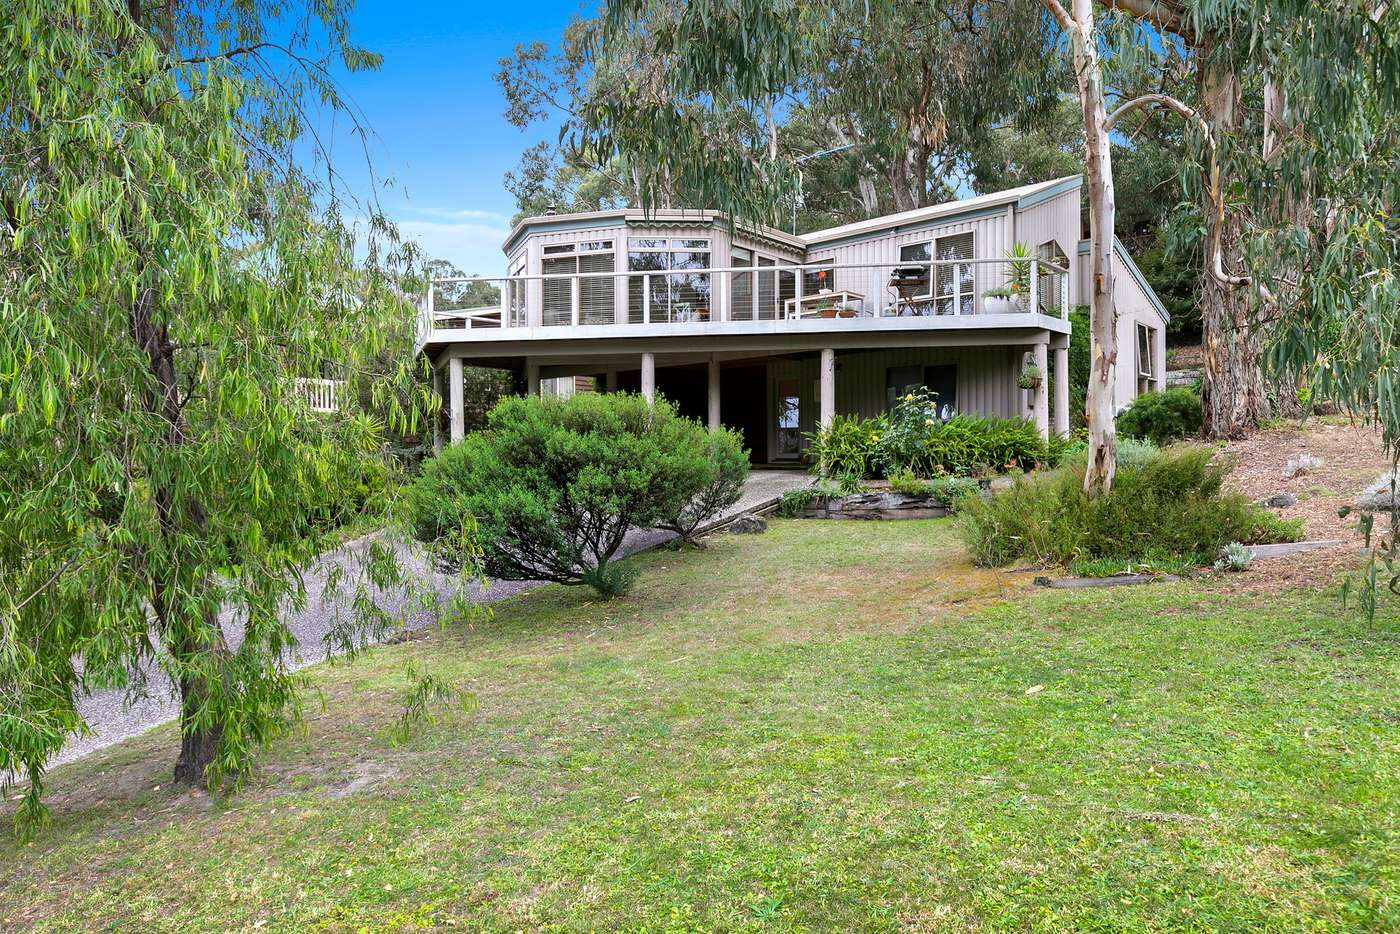 Main view of Homely house listing, 29 Belvedere Terrace, Lorne VIC 3232